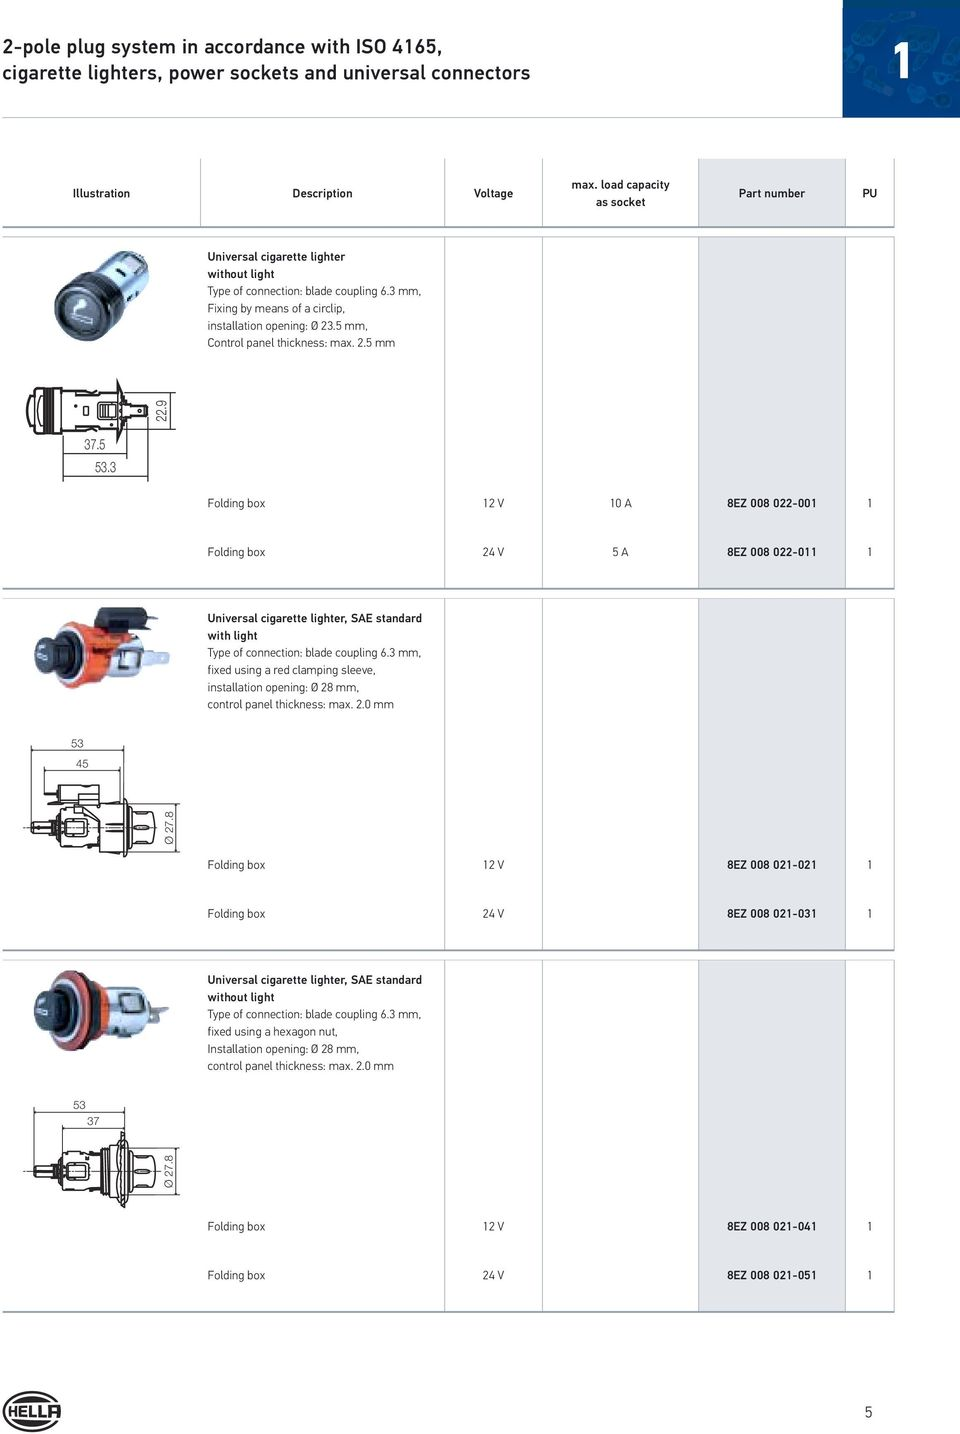 Electrical Plug Type Connections Pdf Tractor 7 Pin Trailer Wiring Diagram With Abs 5 Mm Control Panel Thickness Max 25 229 375 53